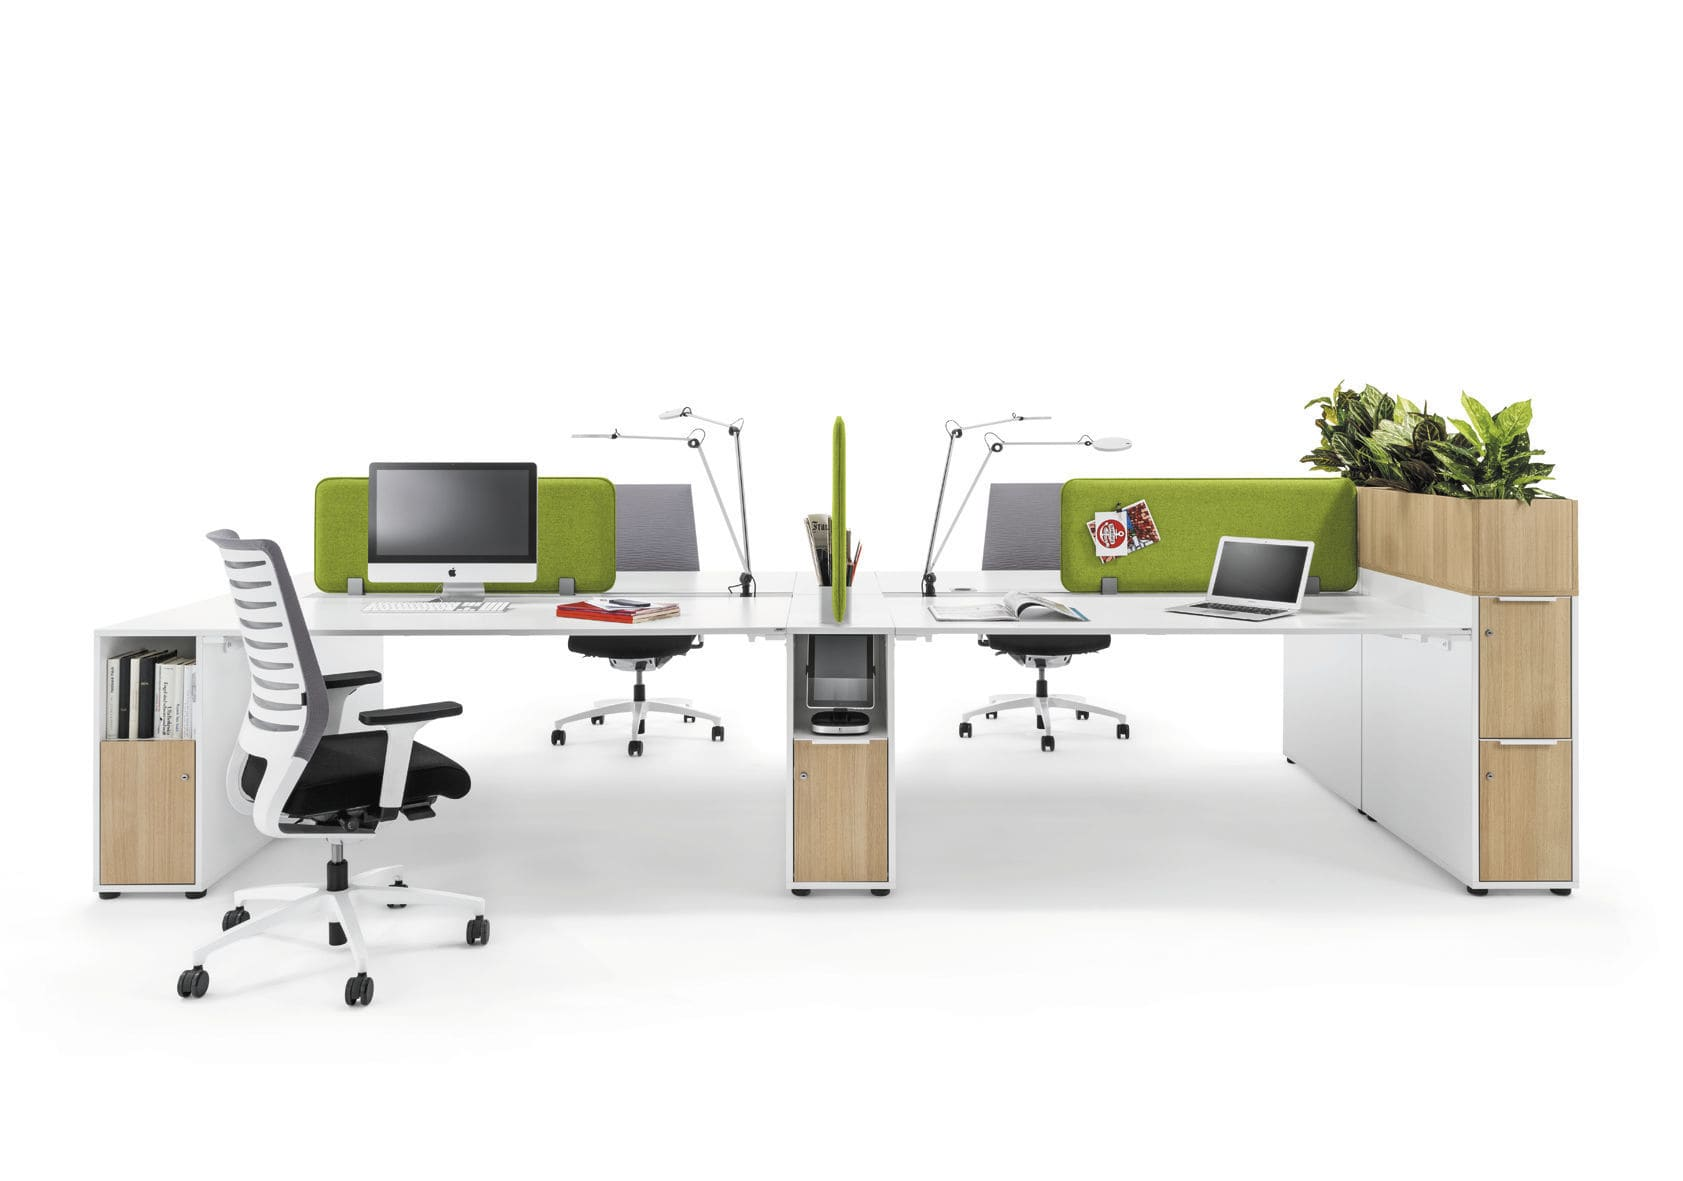 Commercial desk and storage set - WINEA SLIM by Michael Hilgers ...